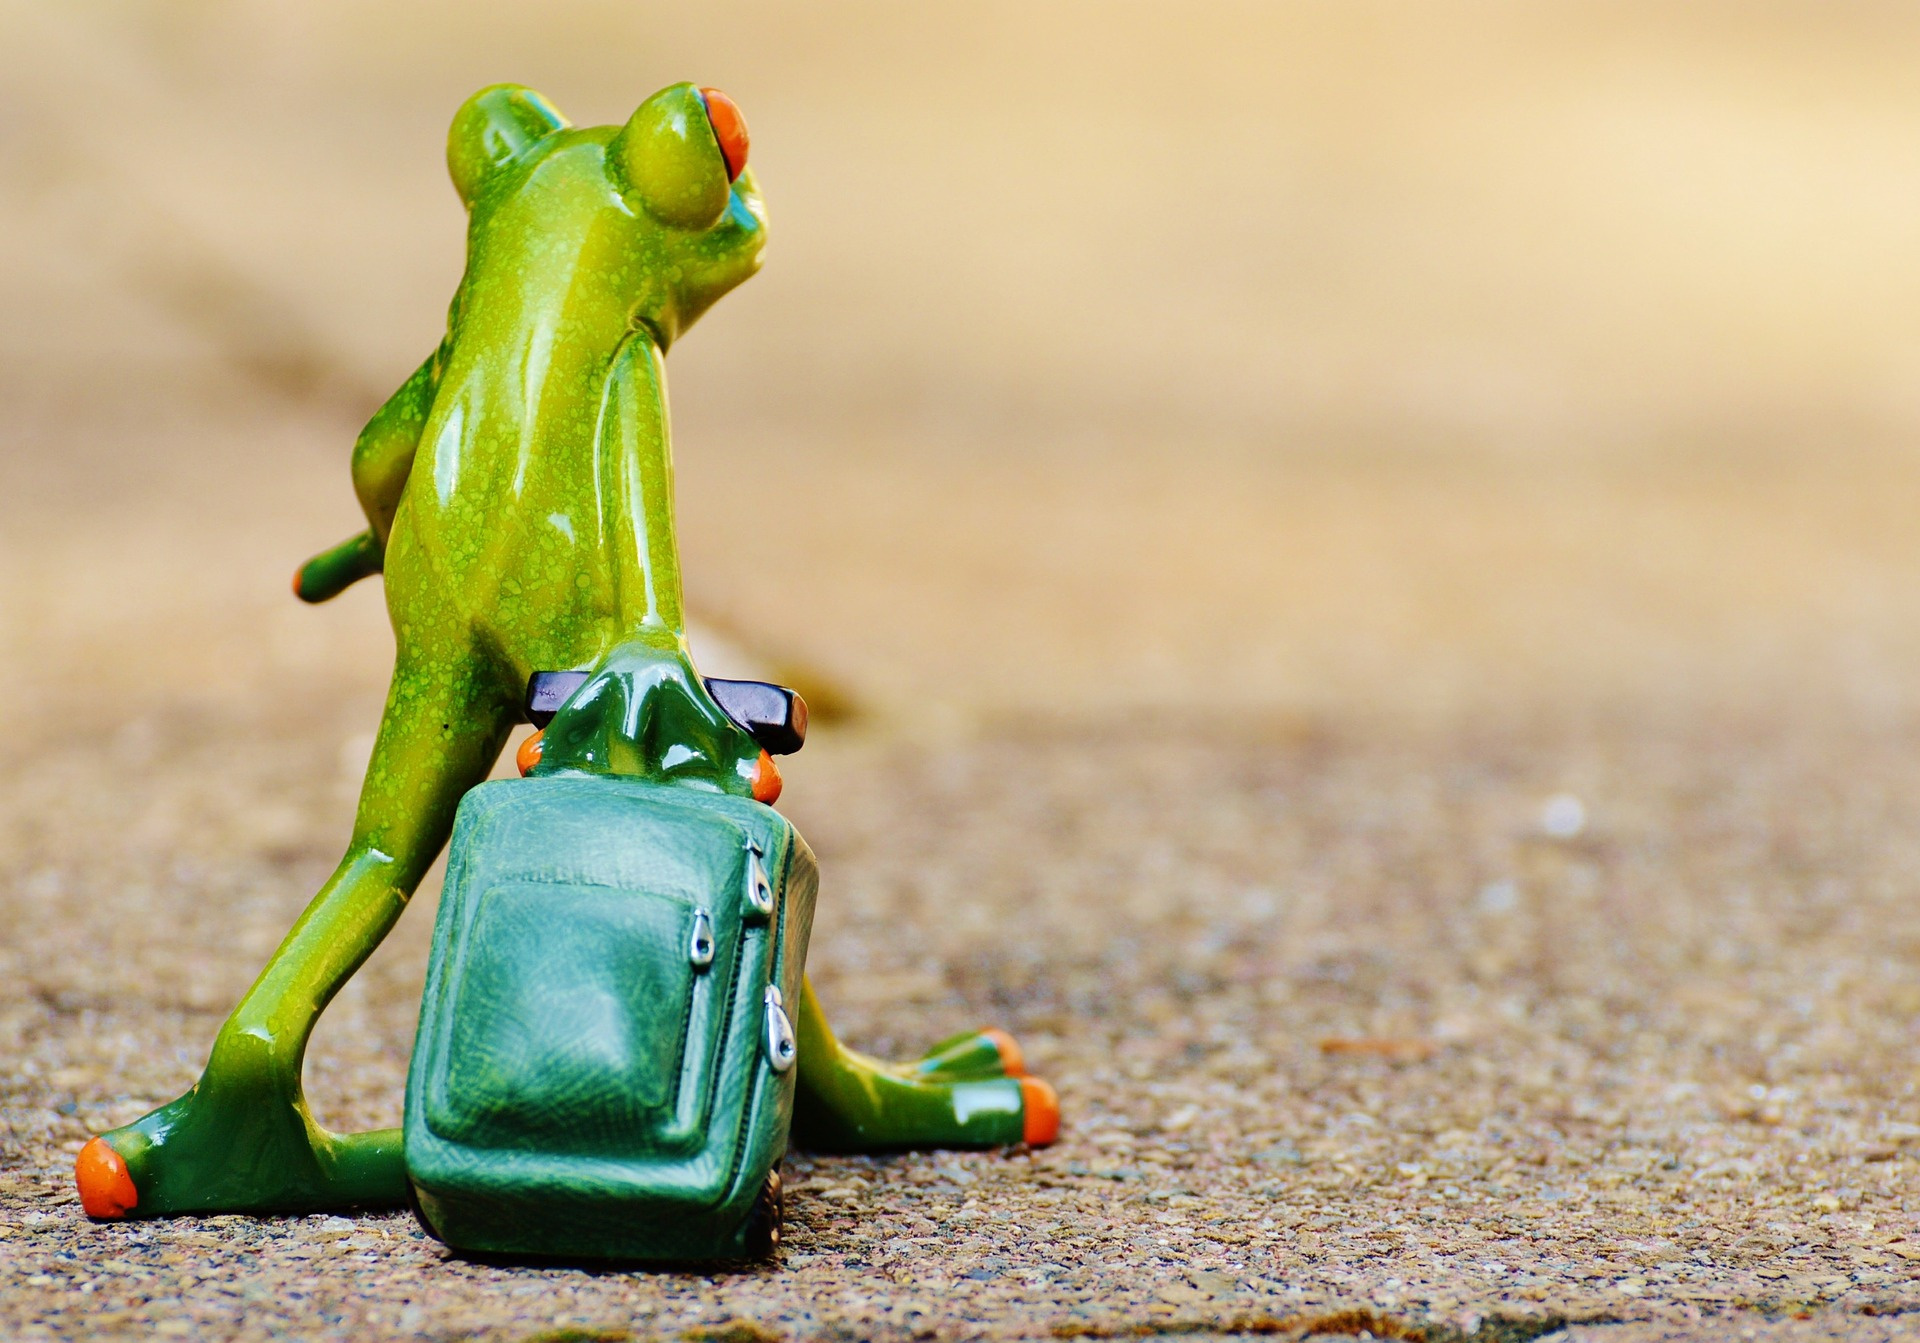 Frog supplying a suitcase